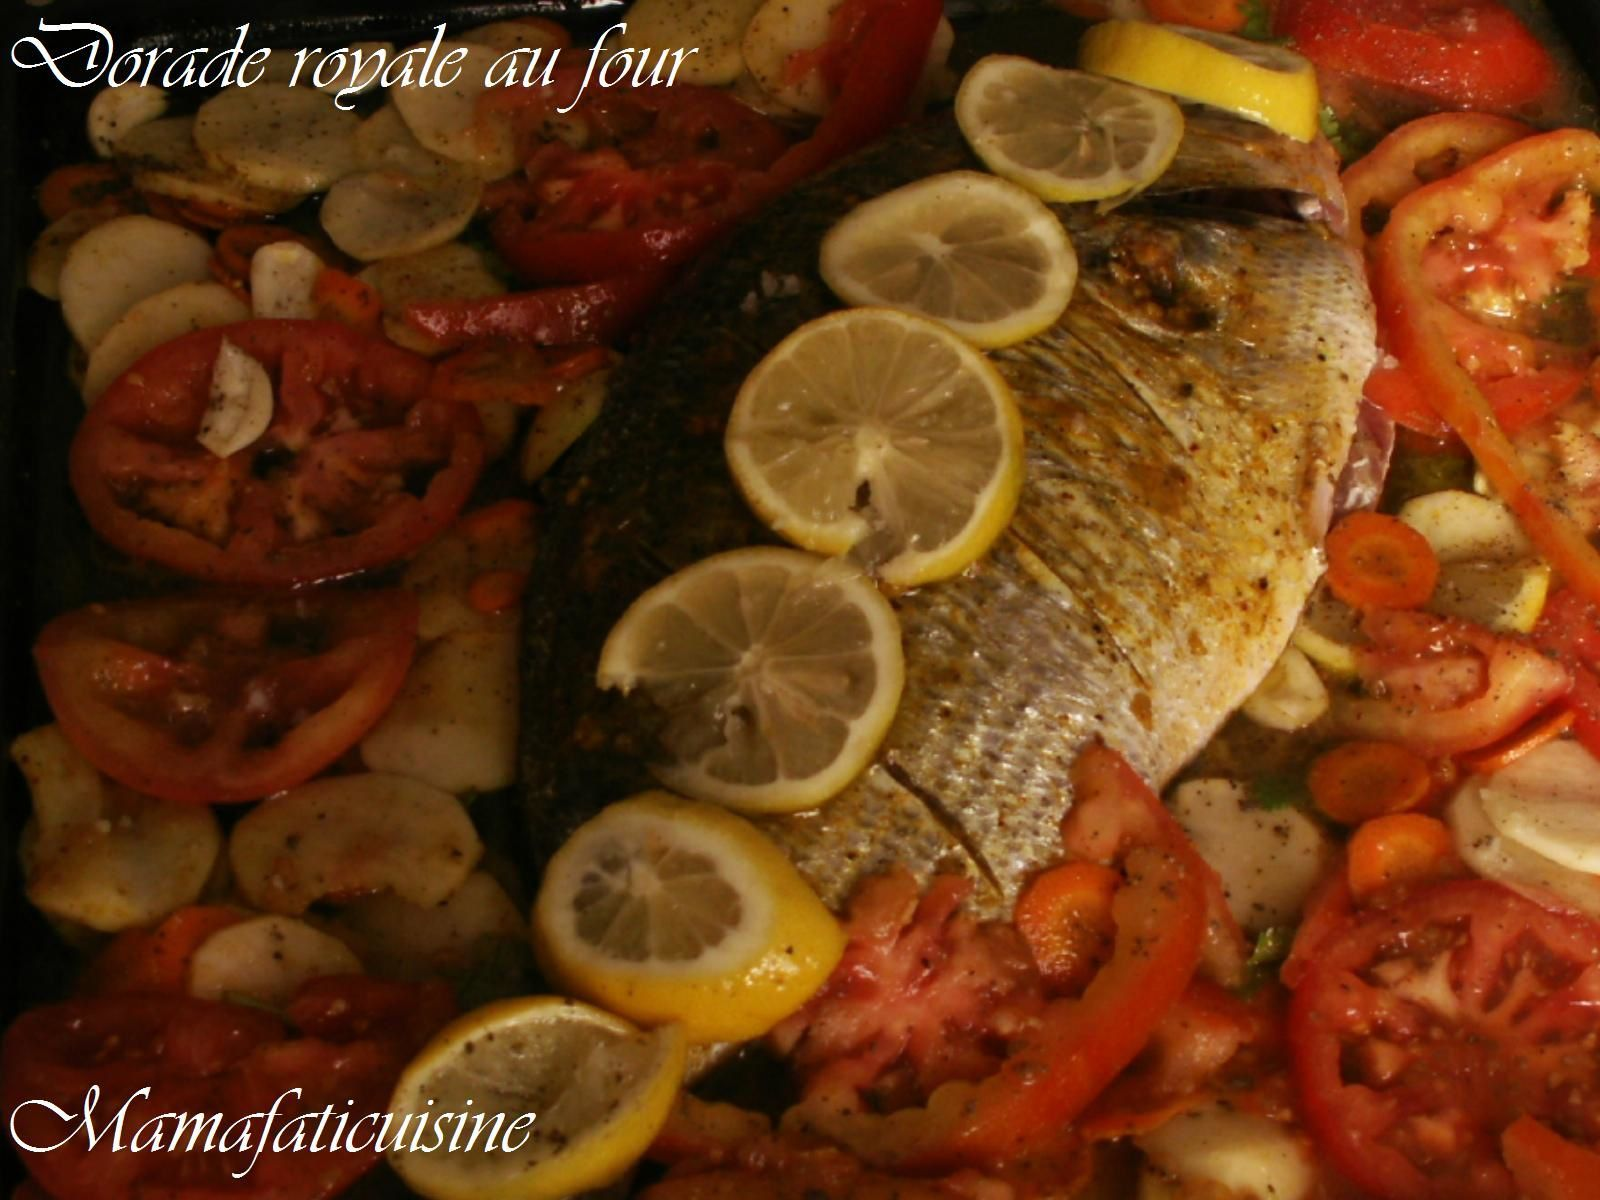 Dorade royale au four mama fati - Recette daurade royale au four ...